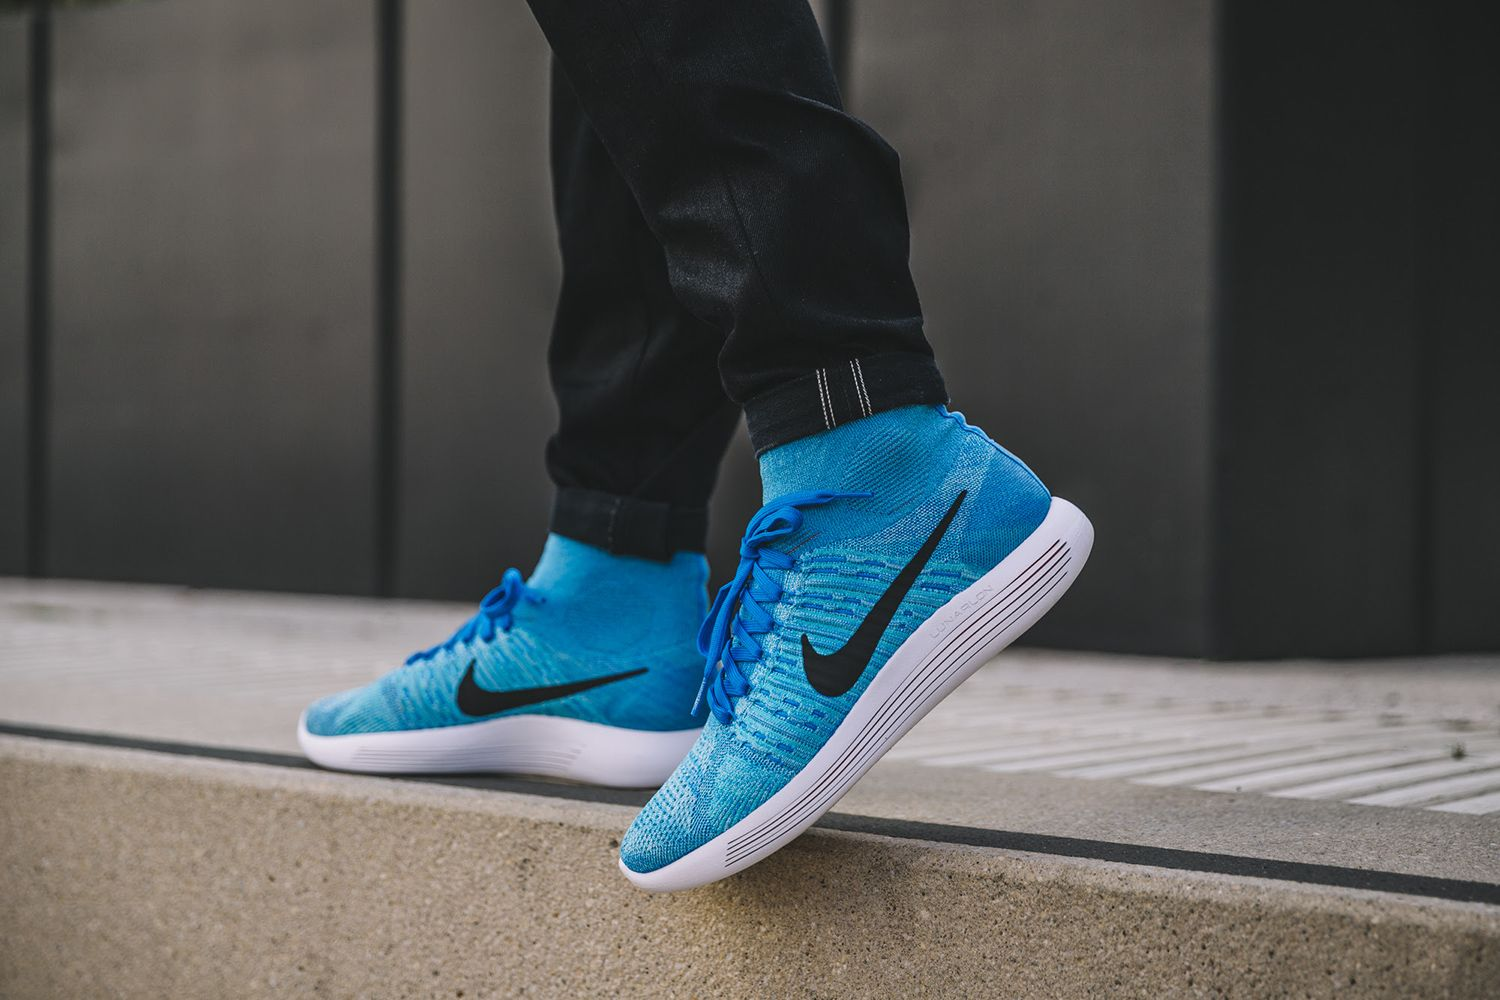 Here's an On Feet Look at the Nike LunarEpic Flyknit